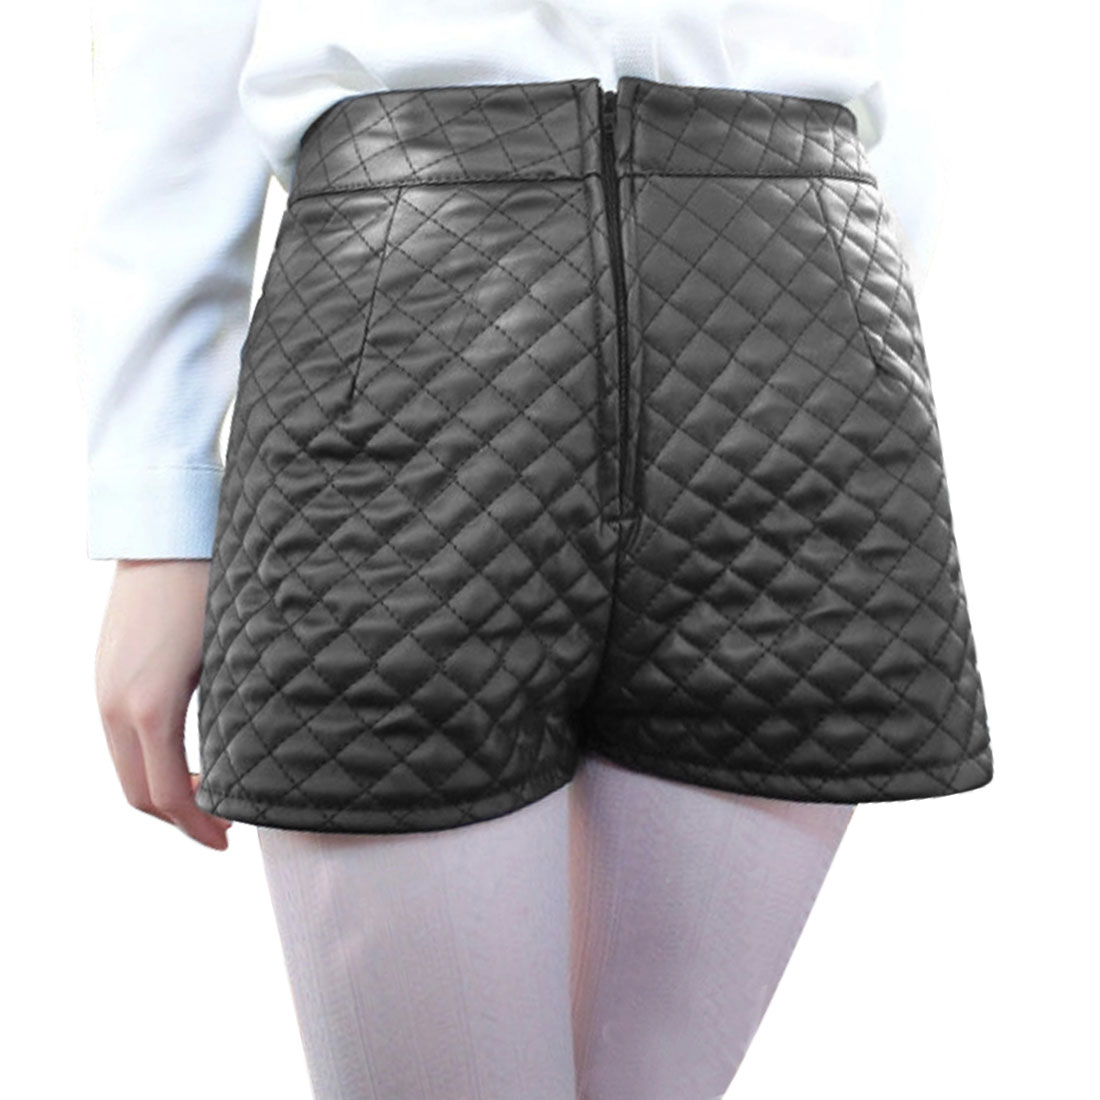 Unique Bargains Women's Diamond-Quilted Imitation Leather Casual Shorts